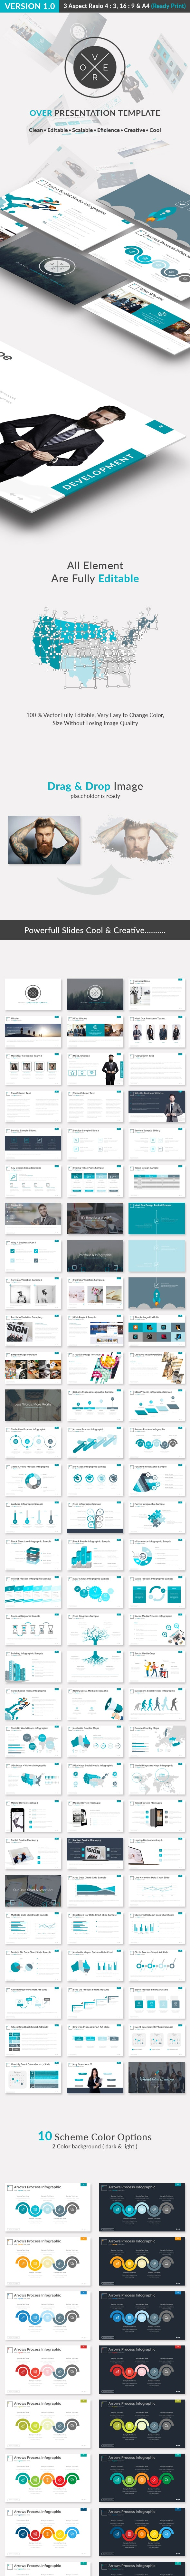 OVER - Minimal Presentation Template - Business PowerPoint Templates